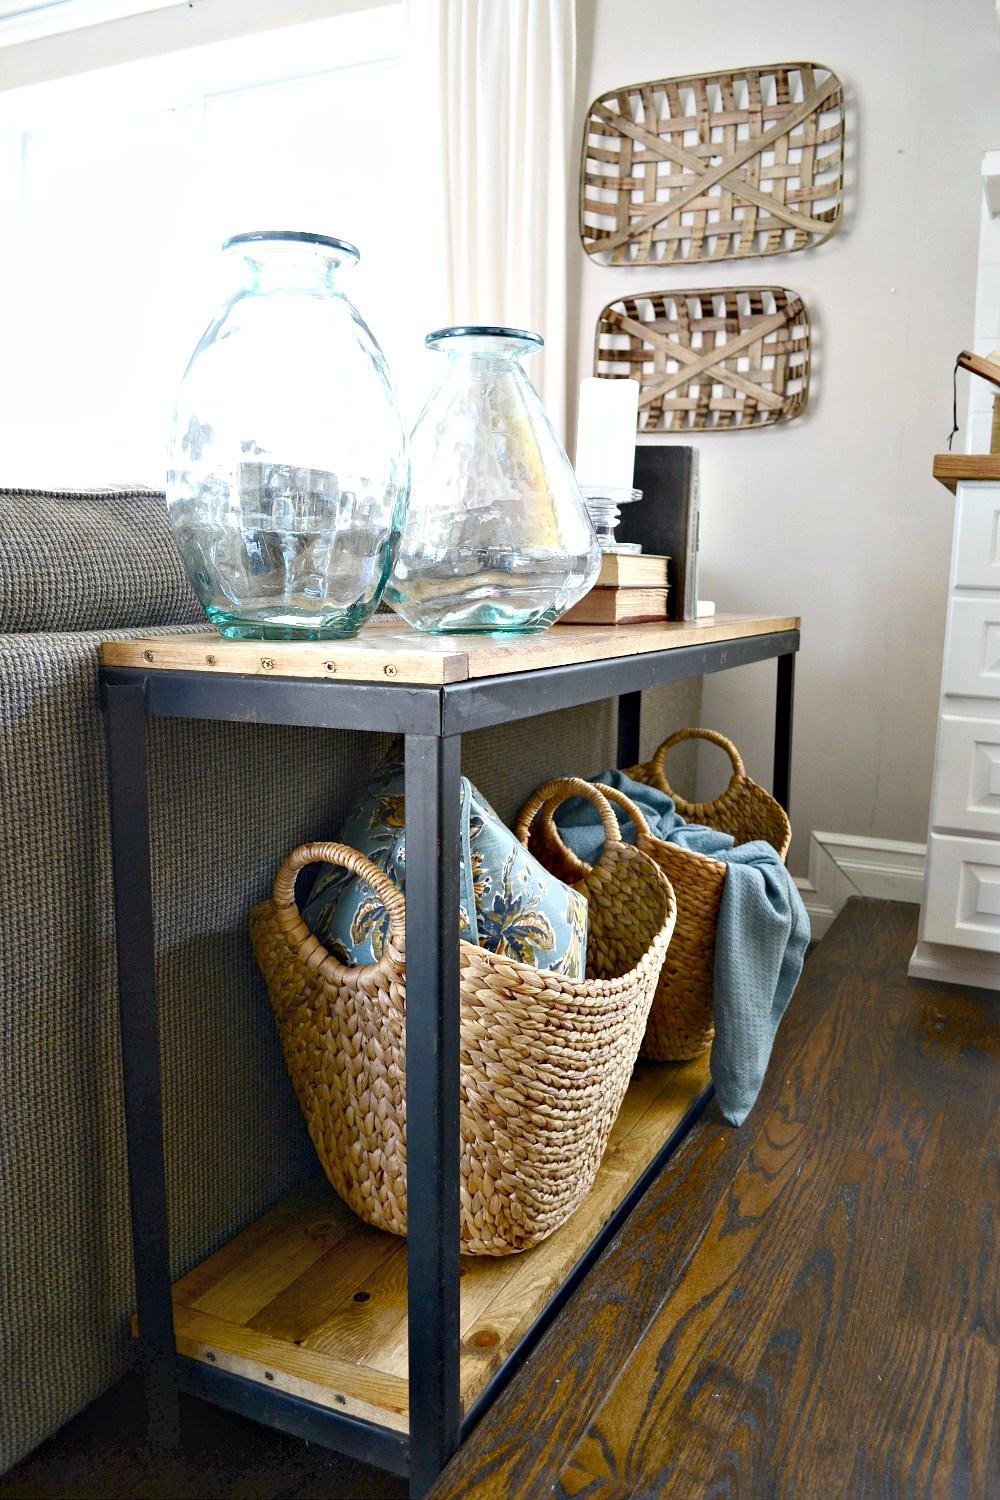 DIY-Farmhouse-Industrial-sofa-table.-Turn-a-metal-shelf-into-rustic-shelving.-Find-out-more-at-theweatheredfox.com_